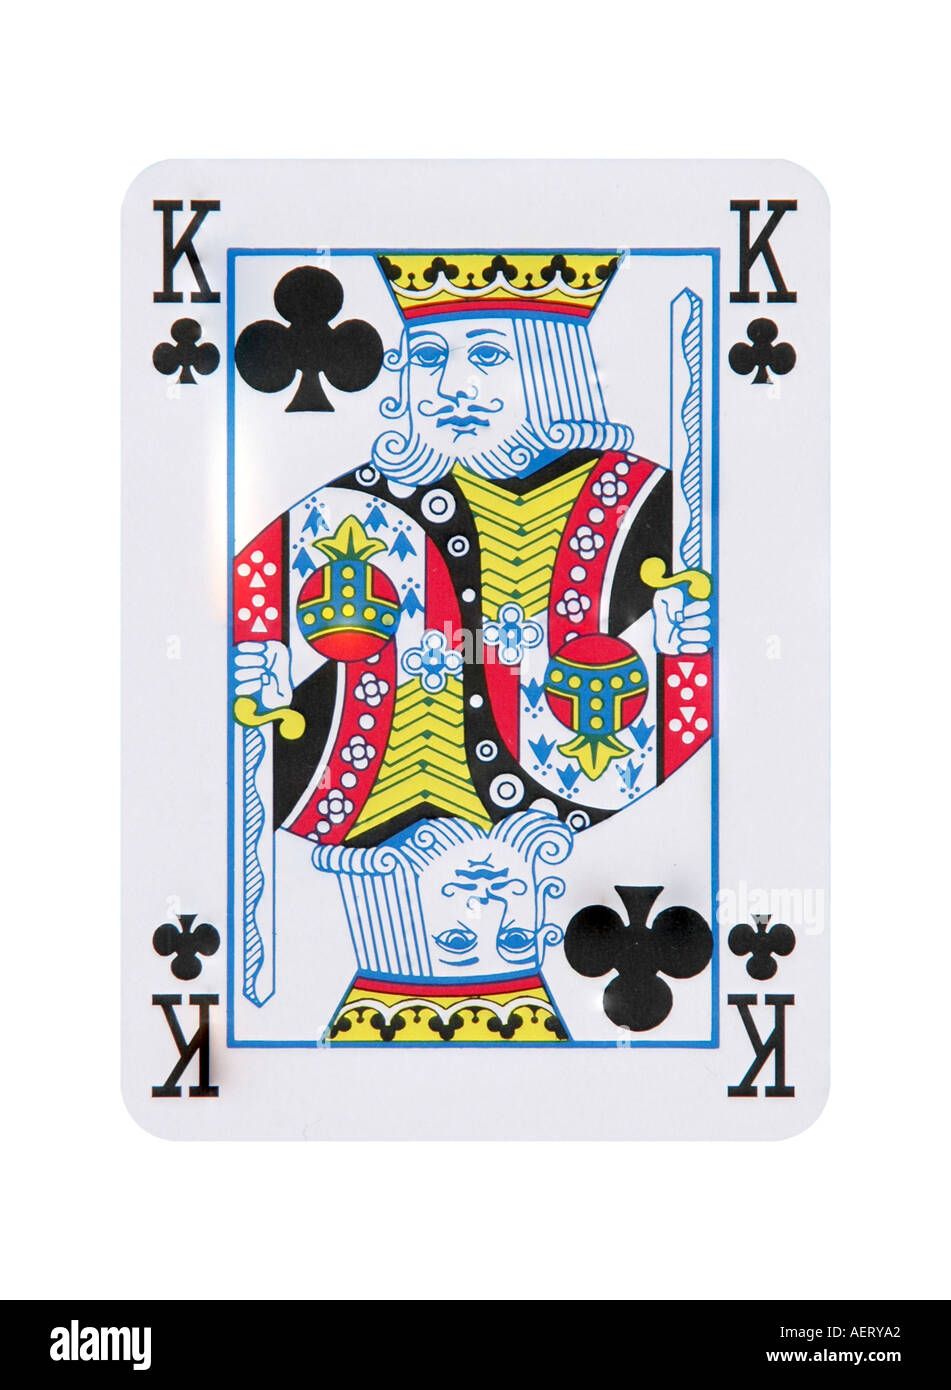 king of clubs card stock photo  alamy